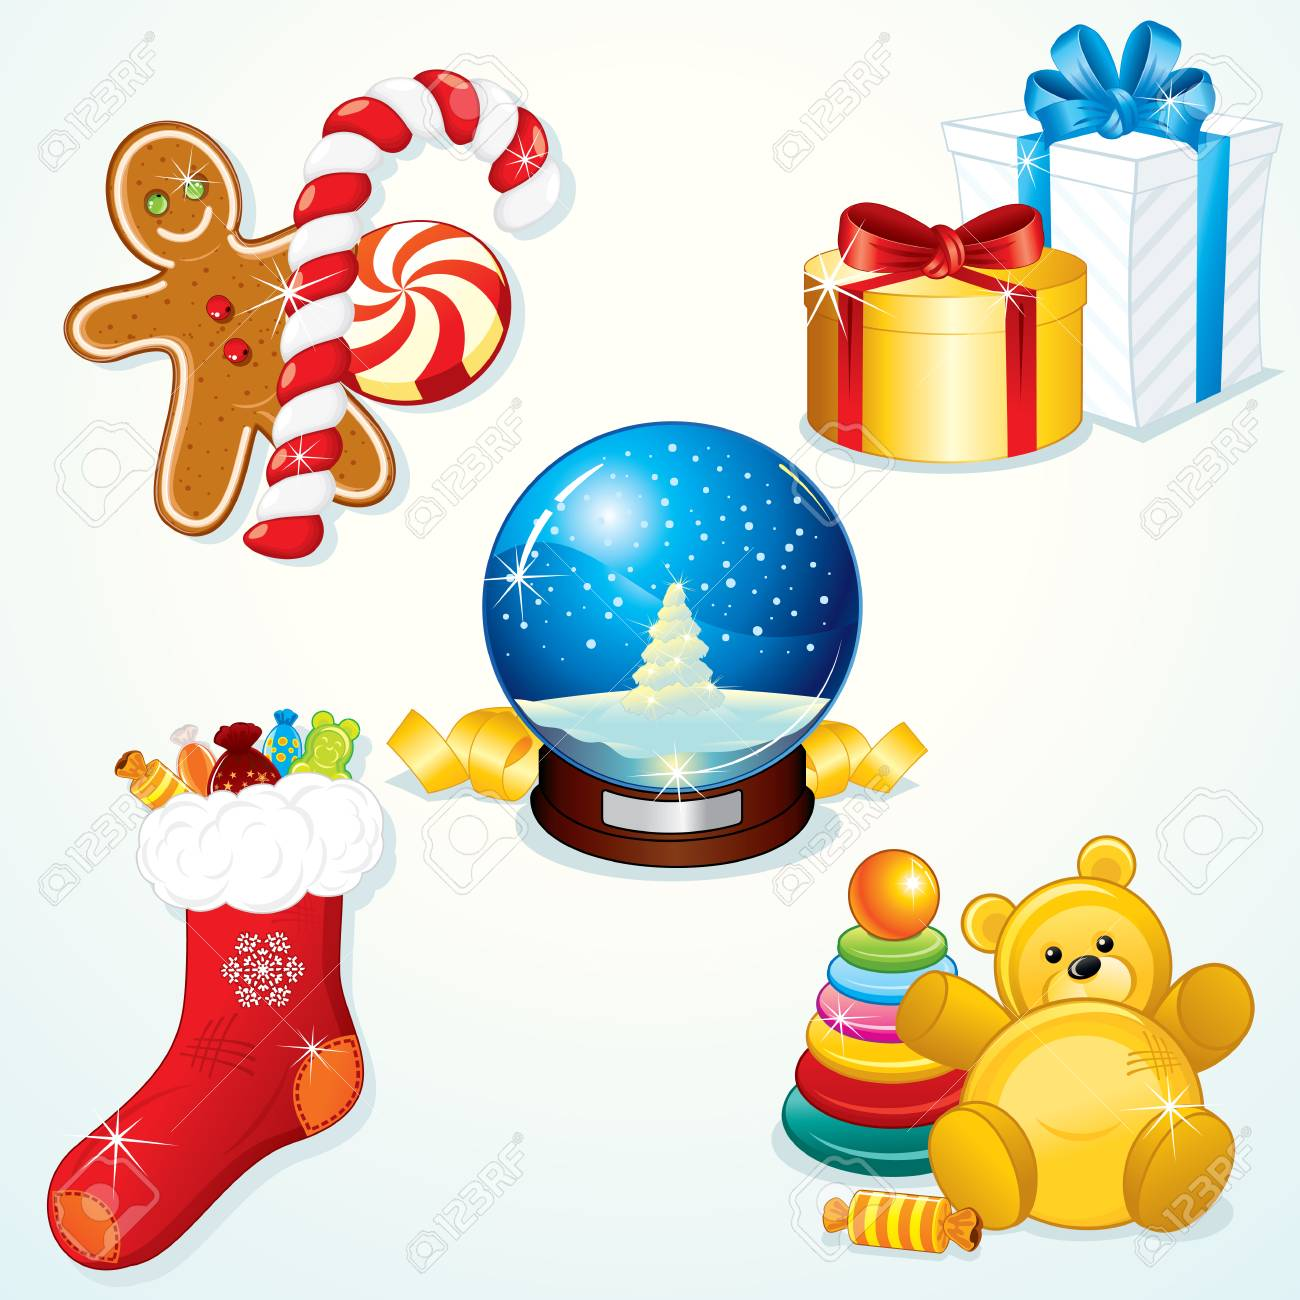 Various Christmas Gifts for your festive design Stock Vector - 8403134